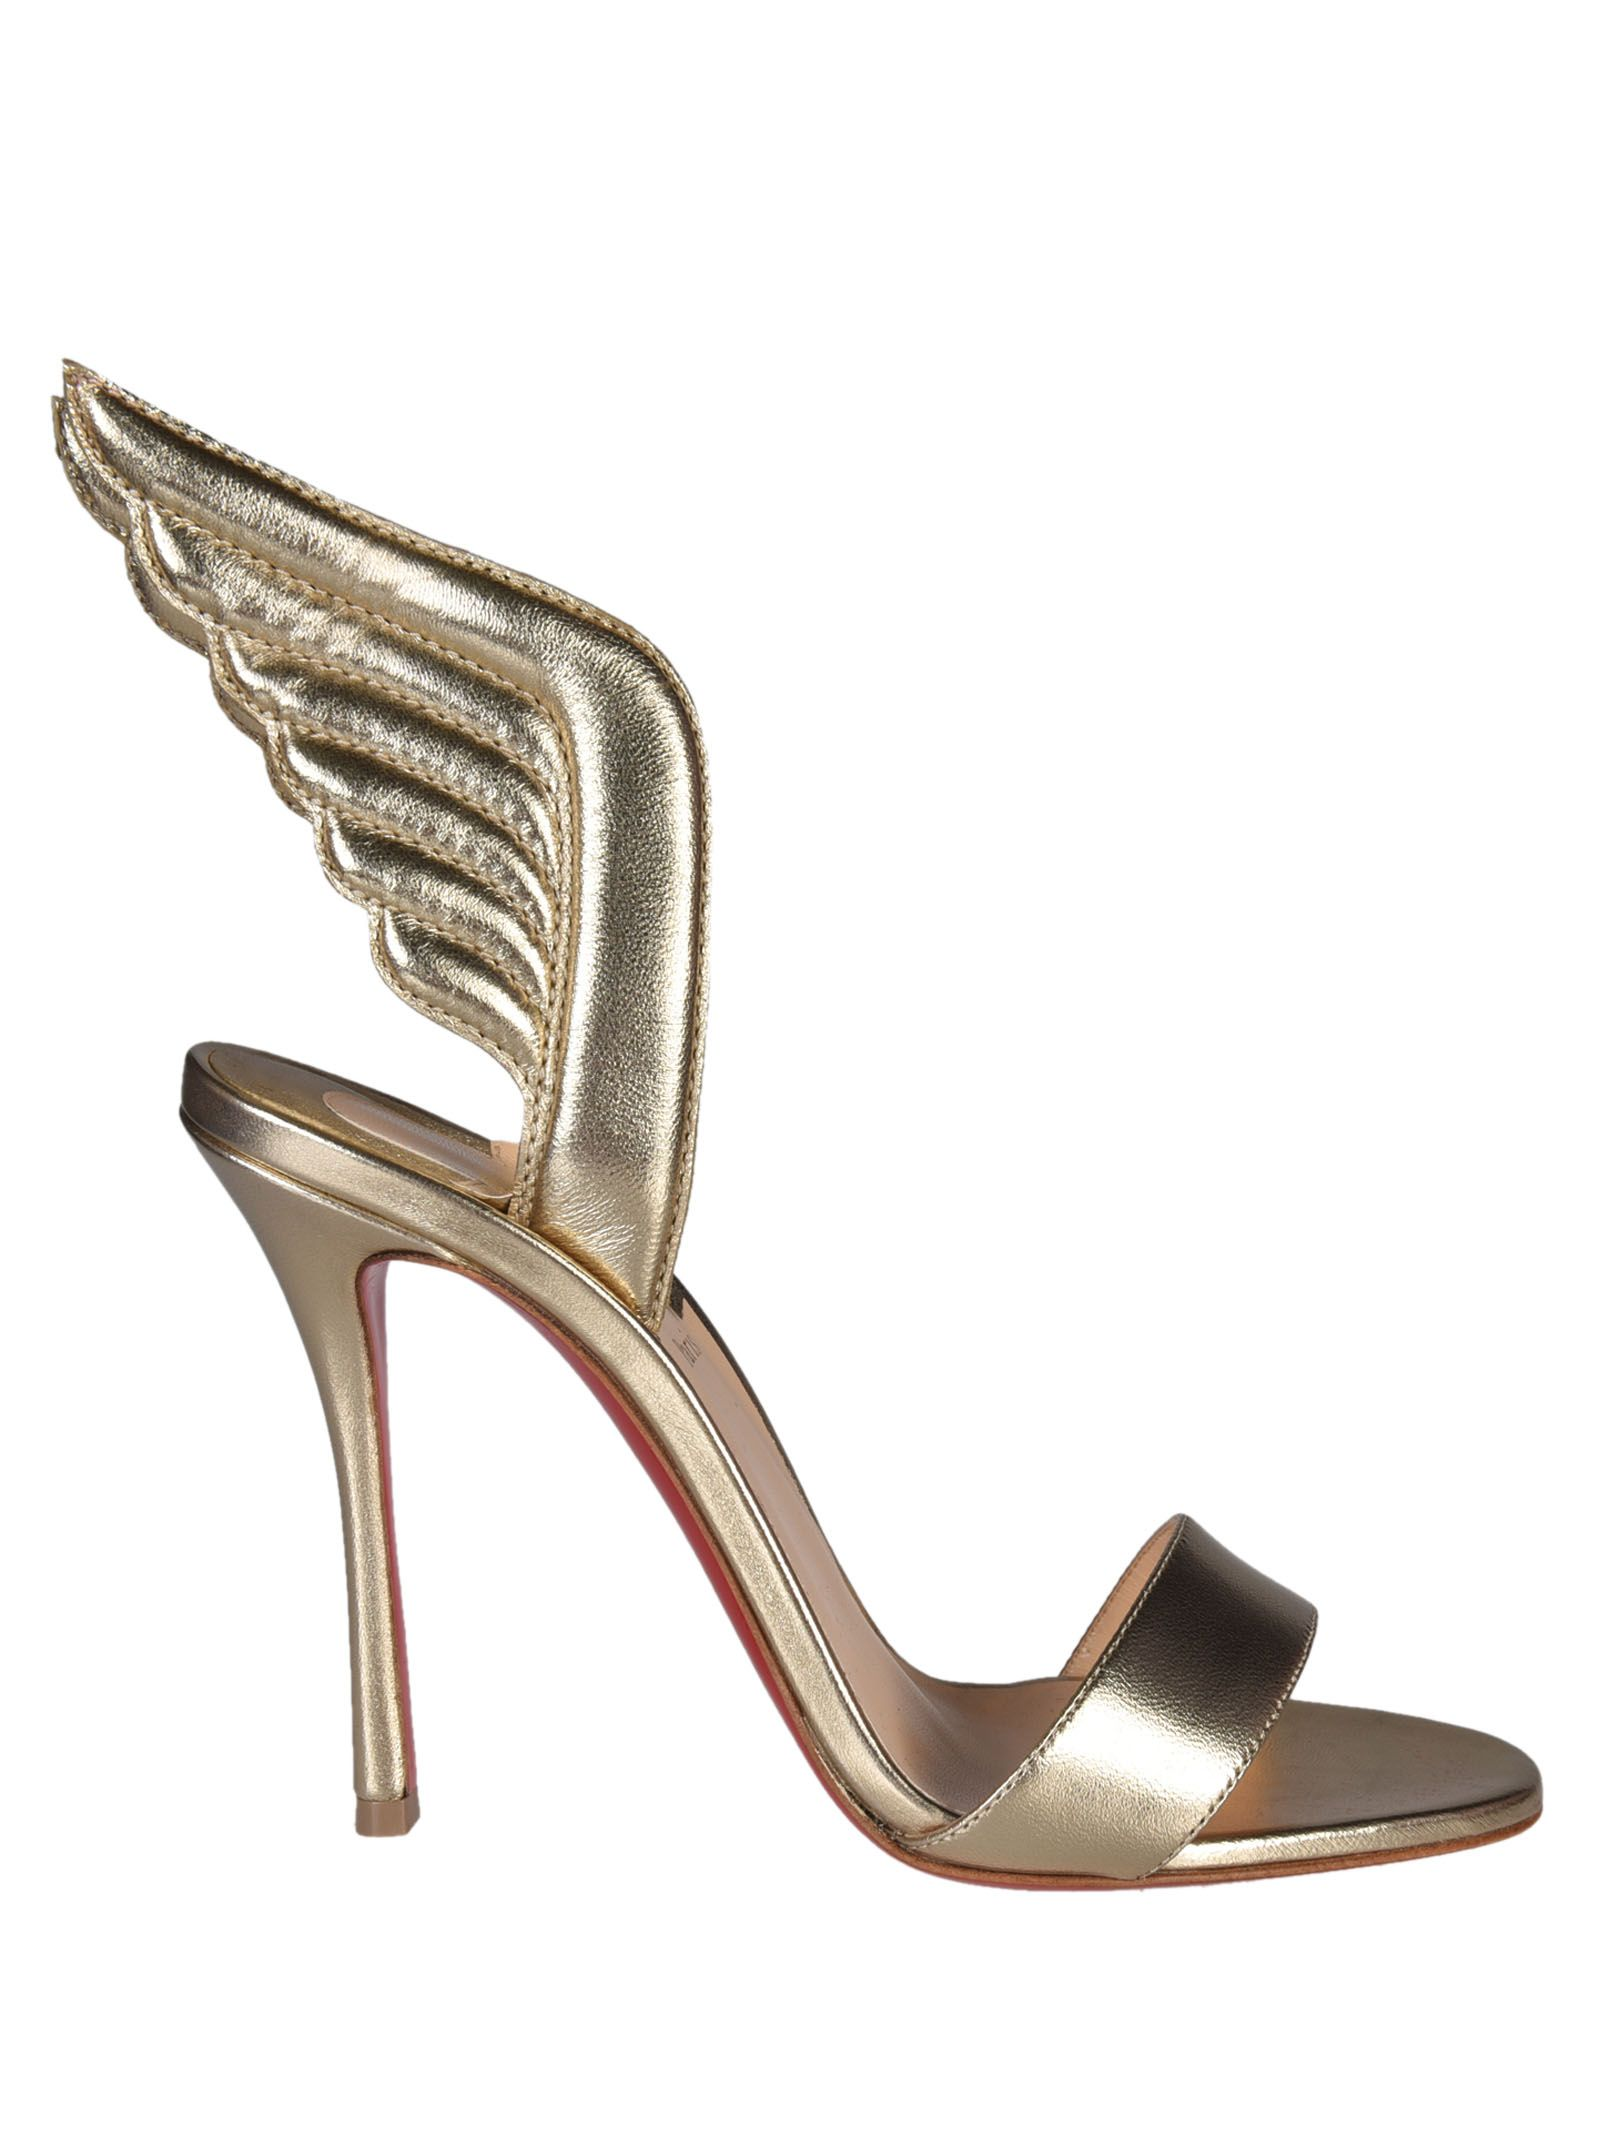 christian louboutin female christian louboutin samotresse sandals